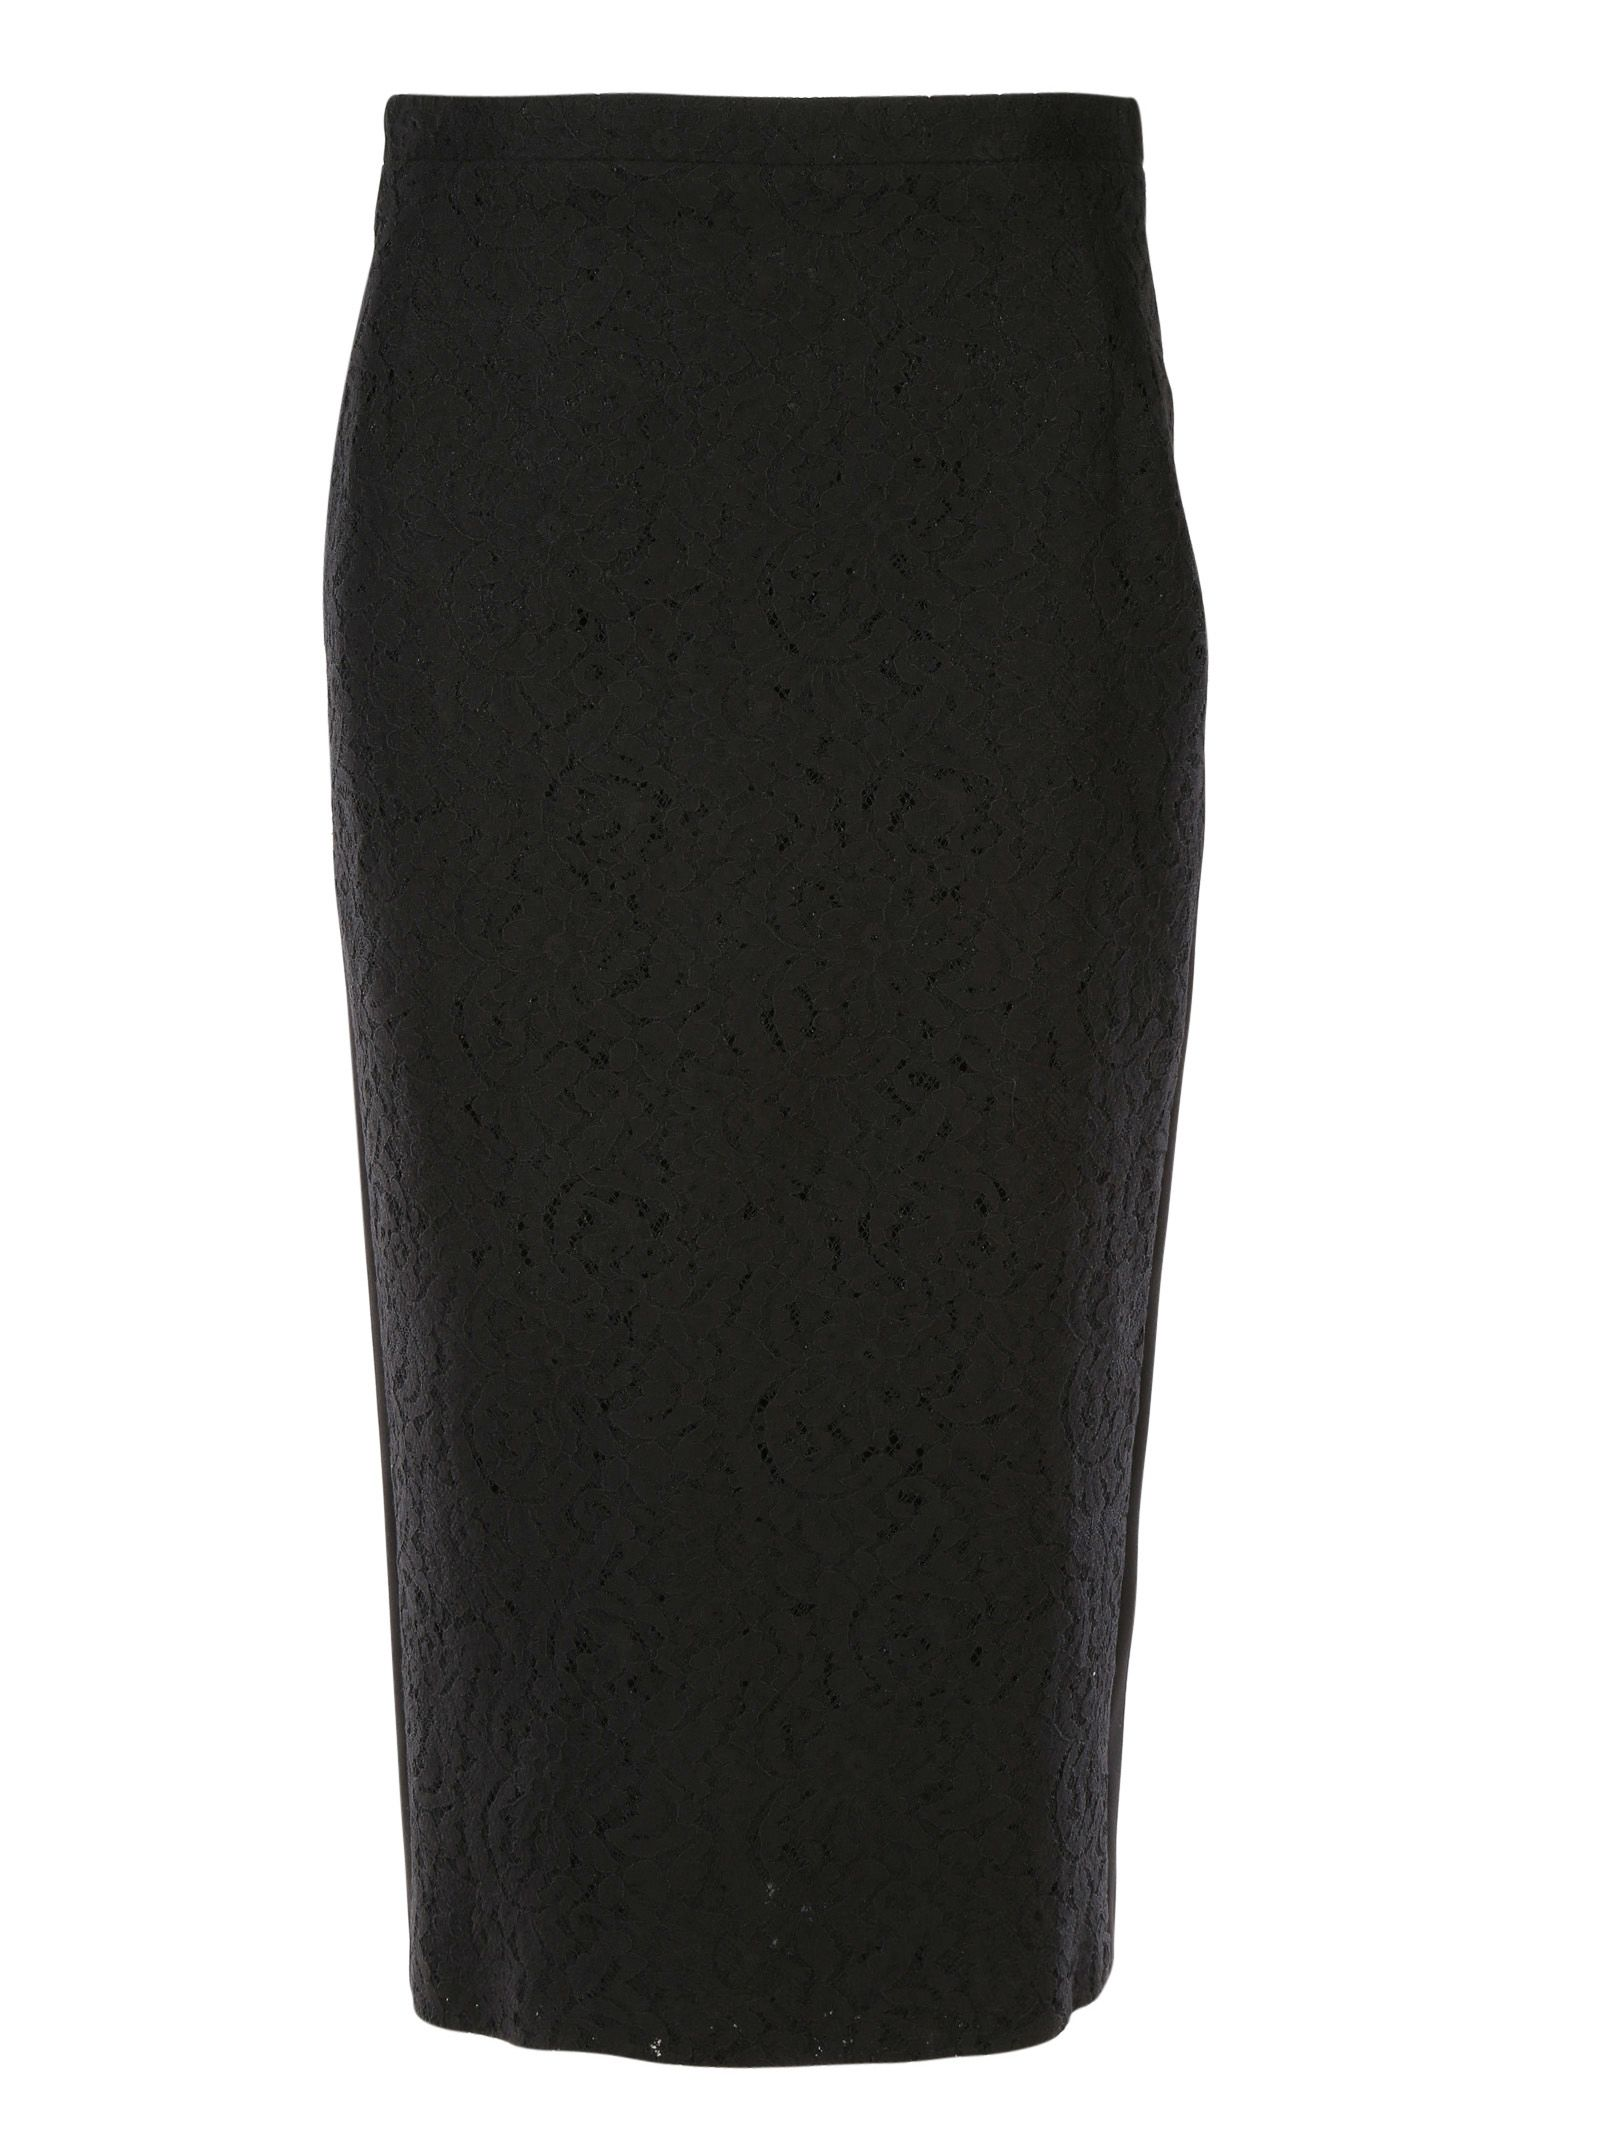 N°21 Lace Panel Pencil Skirt